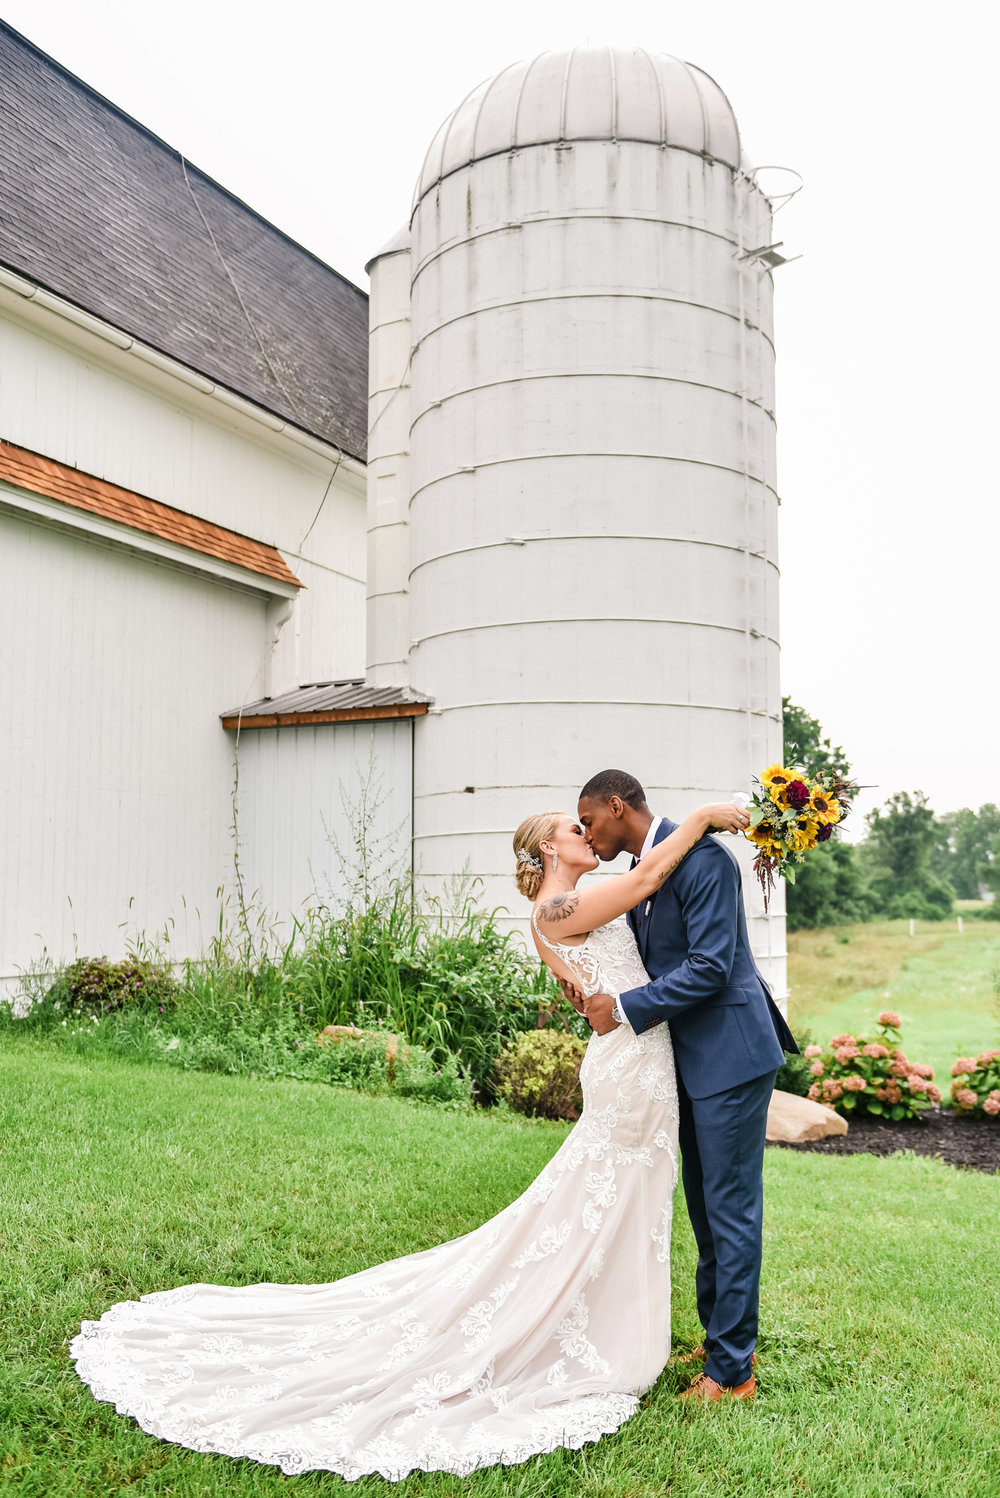 Cobblestone_Wedding_Barn_Rochester_Wedding_JILL_STUDIO_Rochester_NY_Photographer_DSC_7426.jpg